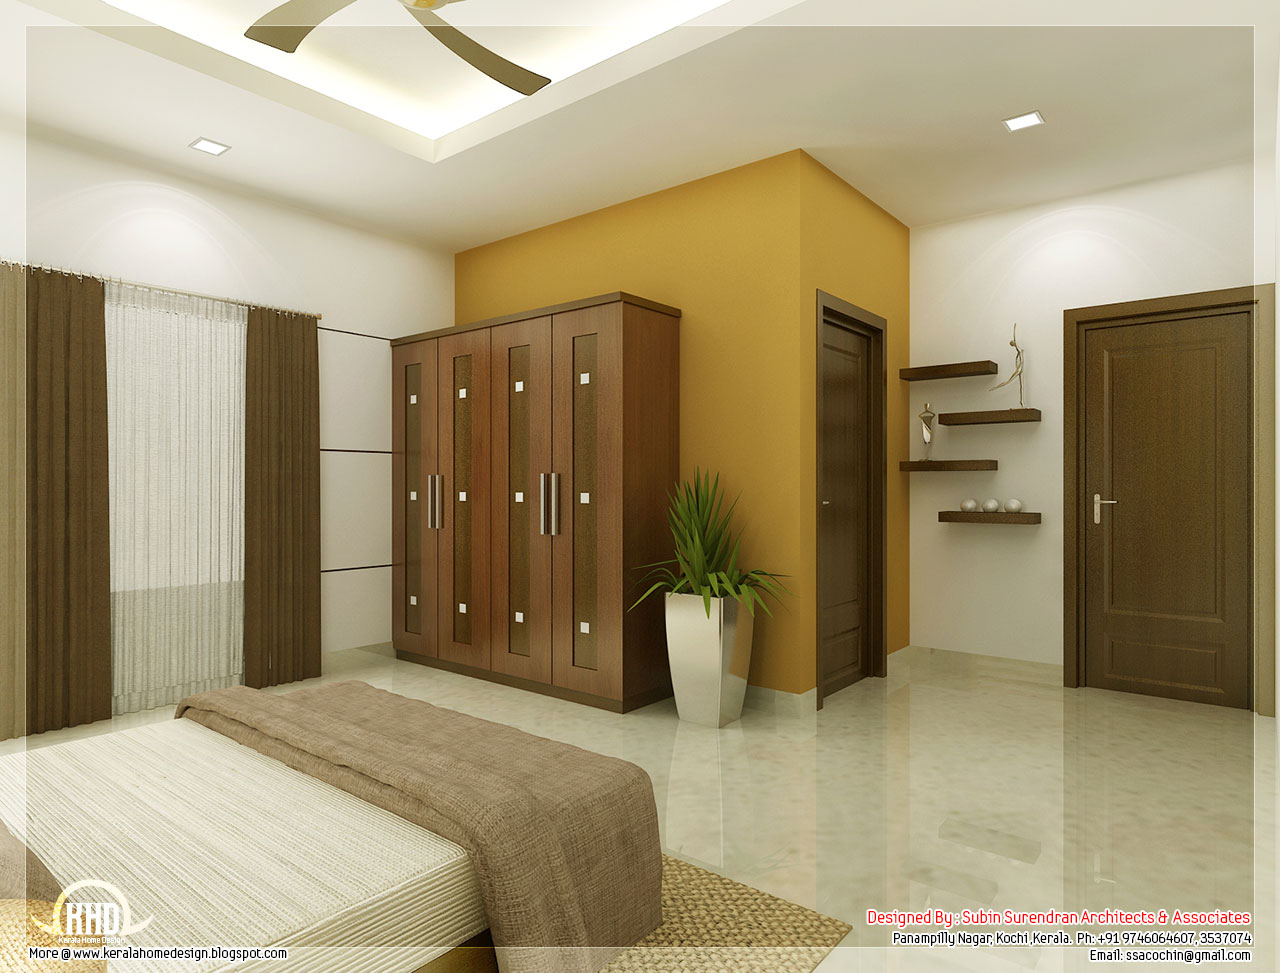 Beautiful bedroom interior designs kerala home design and floor plans - Interior bedroom design ...